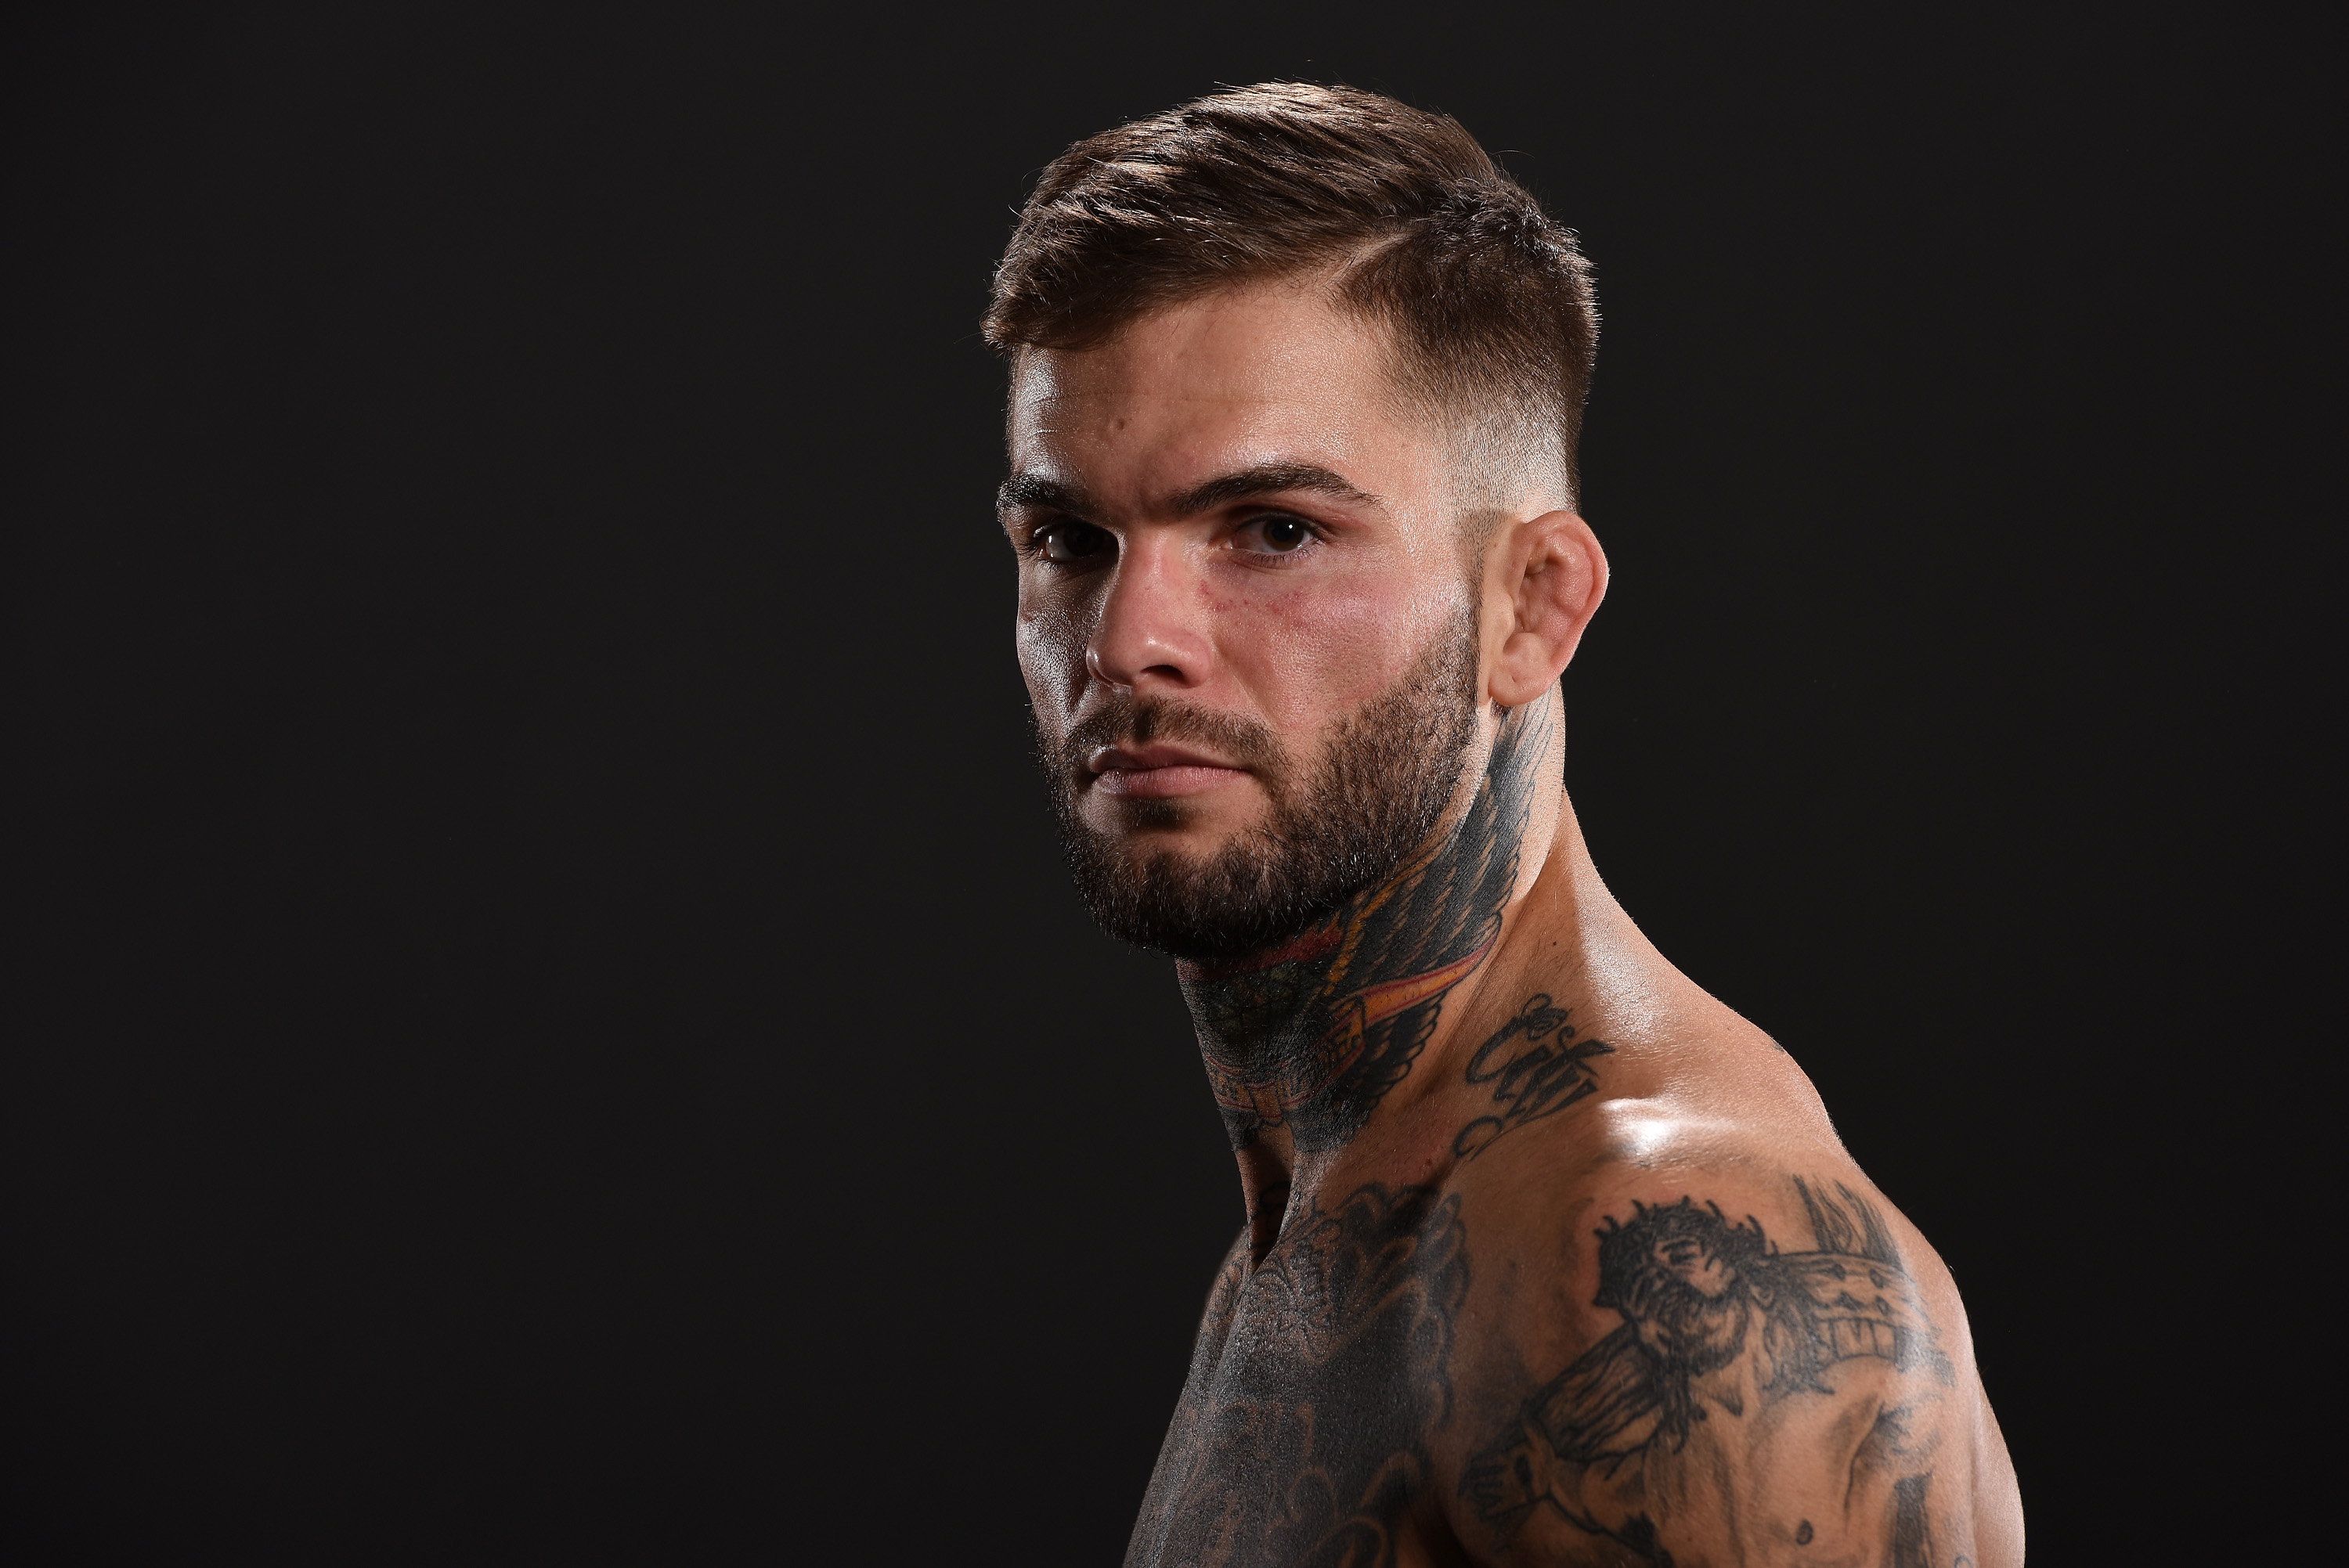 LAS VEGAS, NEVADA - MAY 29: Cody Garbrandt poses for a post fight portrait backstage during the UFC Fight Night Event inside the Mandalay Bay Events Center on May 29, 2016 in Las Vegas Nevada. (Photo by Mike Roach/Zuffa LLC/Zuffa LLC via Getty Images)